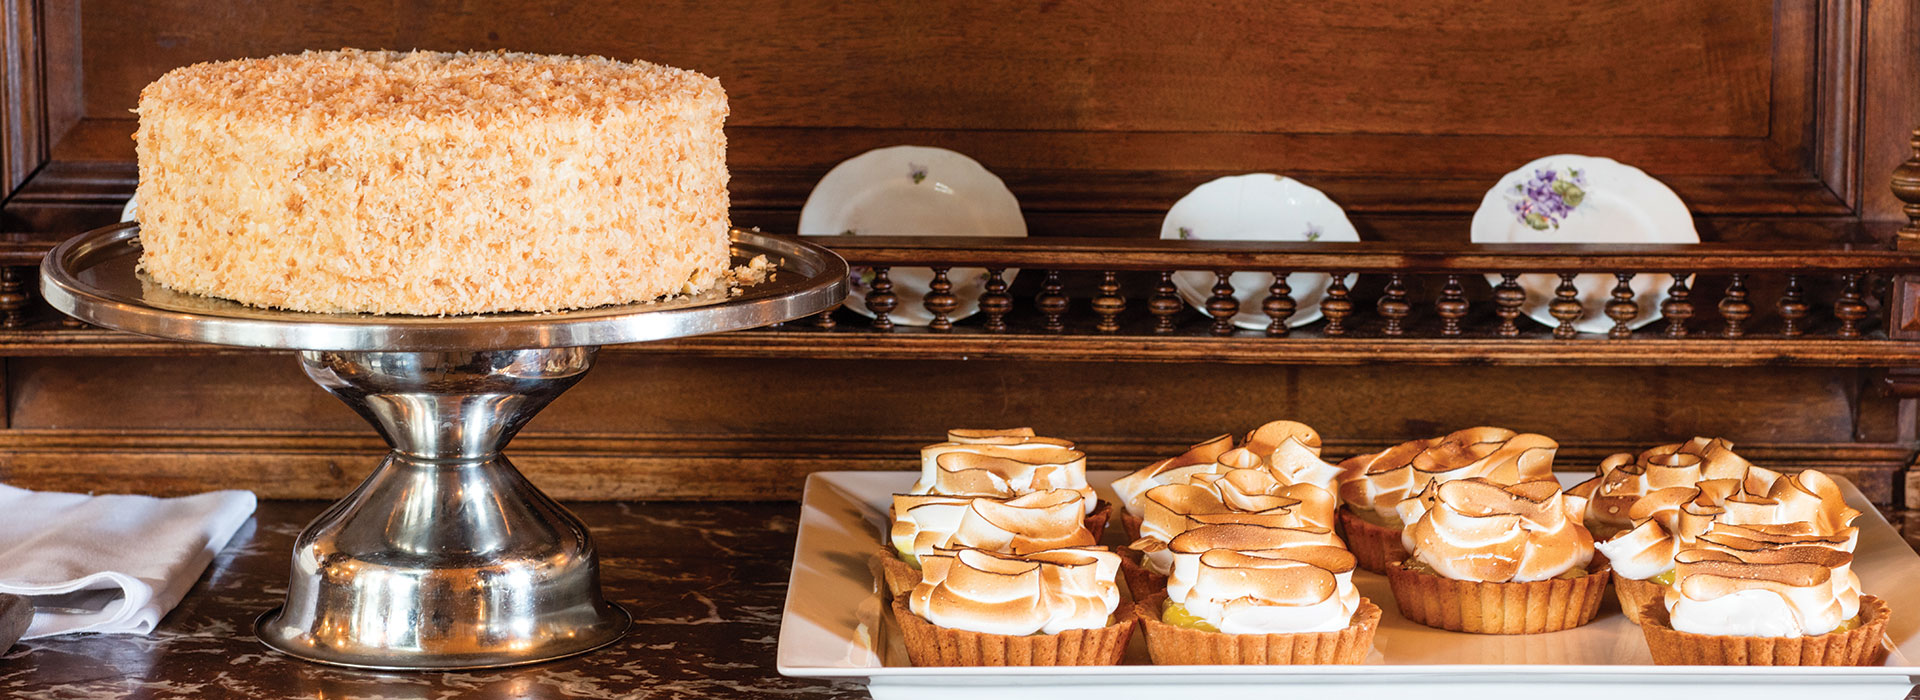 A shot of coconut cake and miniature pies.